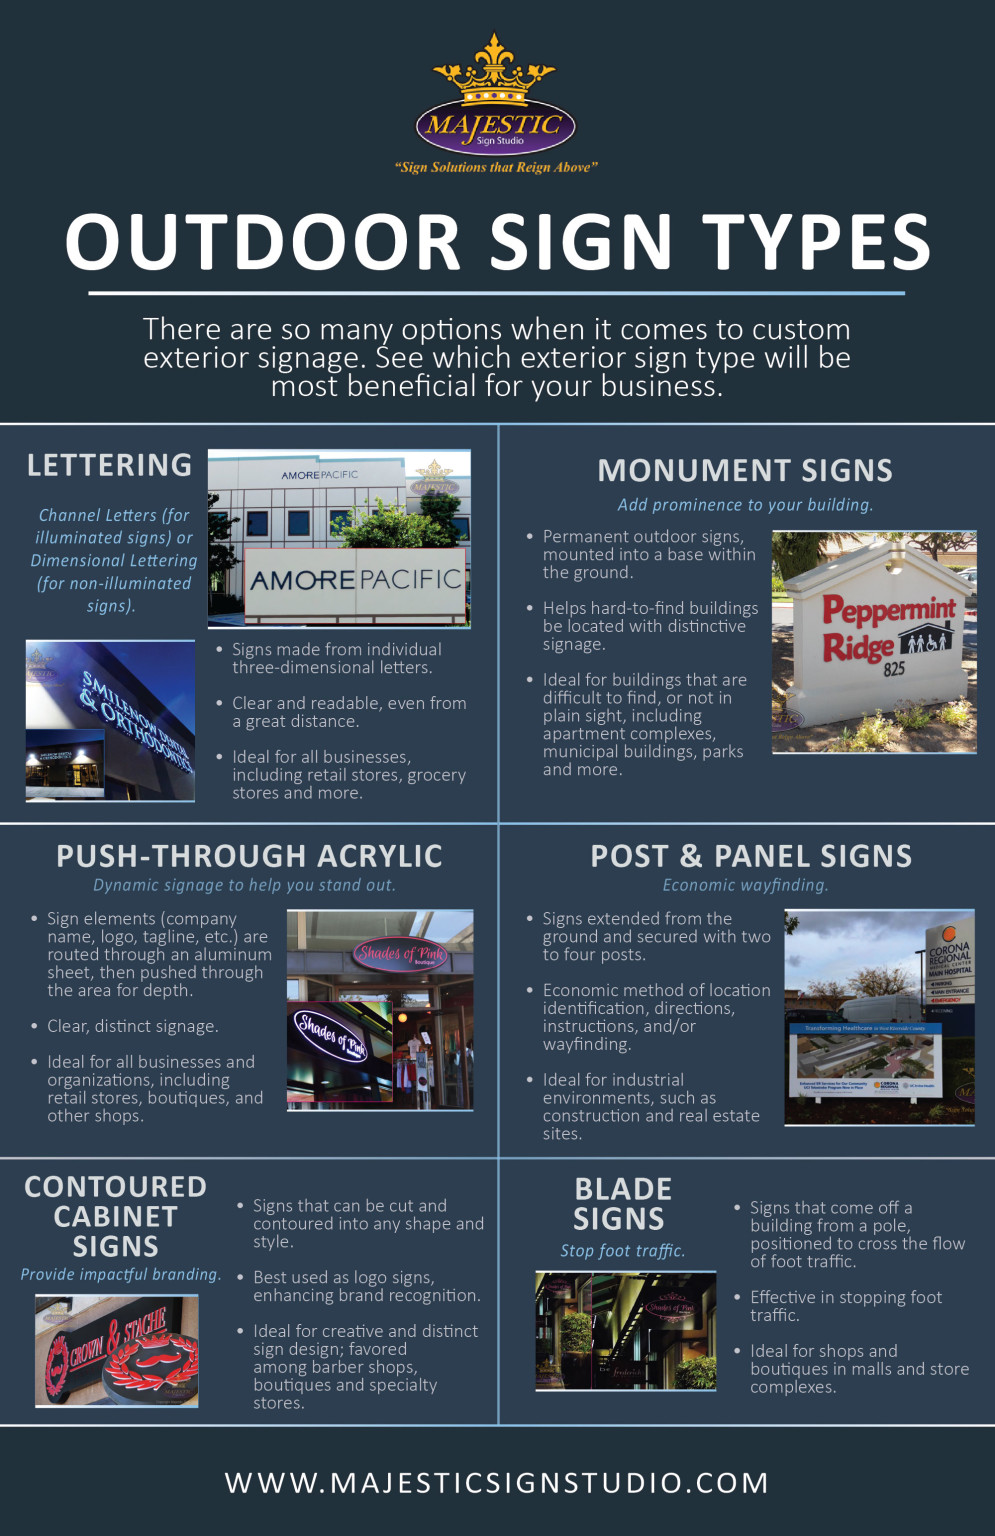 Types of outdoor signage for your business.